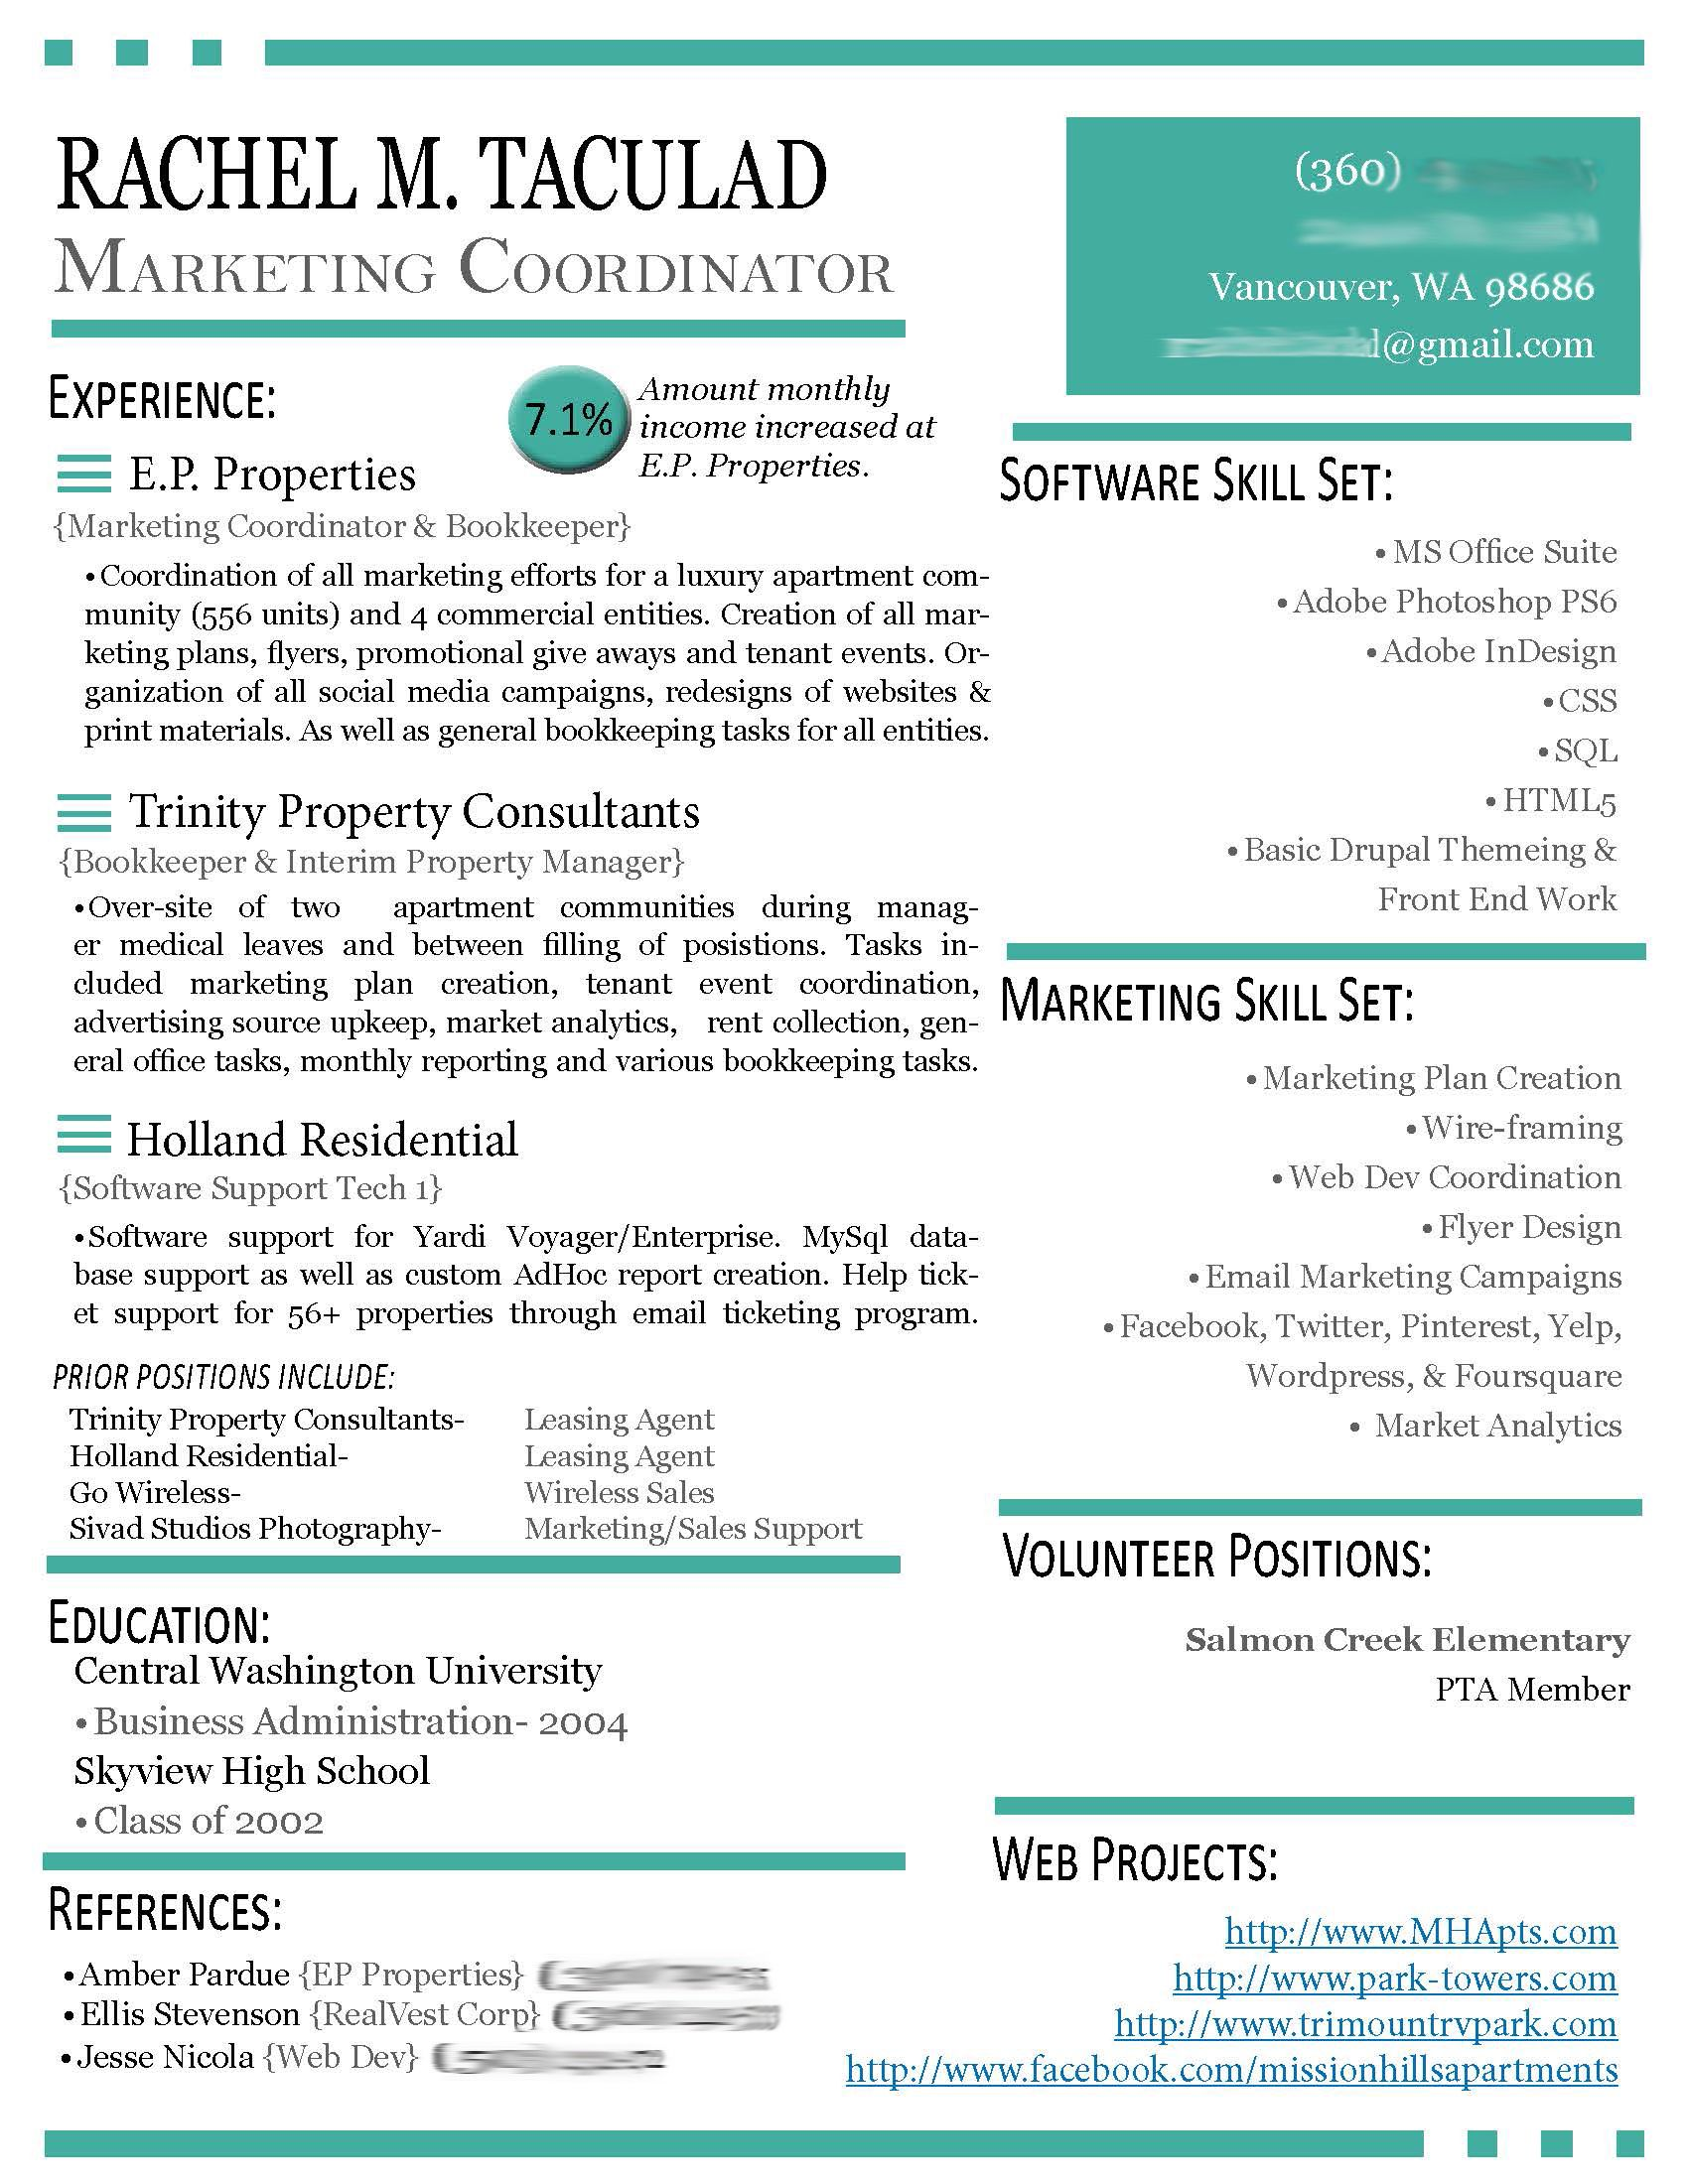 Opposenewapstandardsus  Surprising  Images About Work Stuff On Pinterest  Resume Professional  With Handsome  Images About Work Stuff On Pinterest  Resume Professional Resume Template And Resume Templates With Extraordinary Elementary Teacher Resumes Also Video Producer Resume In Addition Best Format For A Resume And Fresher Resume As Well As Quality Assurance Specialist Resume Additionally Fill Out Resume From Pinterestcom With Opposenewapstandardsus  Handsome  Images About Work Stuff On Pinterest  Resume Professional  With Extraordinary  Images About Work Stuff On Pinterest  Resume Professional Resume Template And Resume Templates And Surprising Elementary Teacher Resumes Also Video Producer Resume In Addition Best Format For A Resume From Pinterestcom